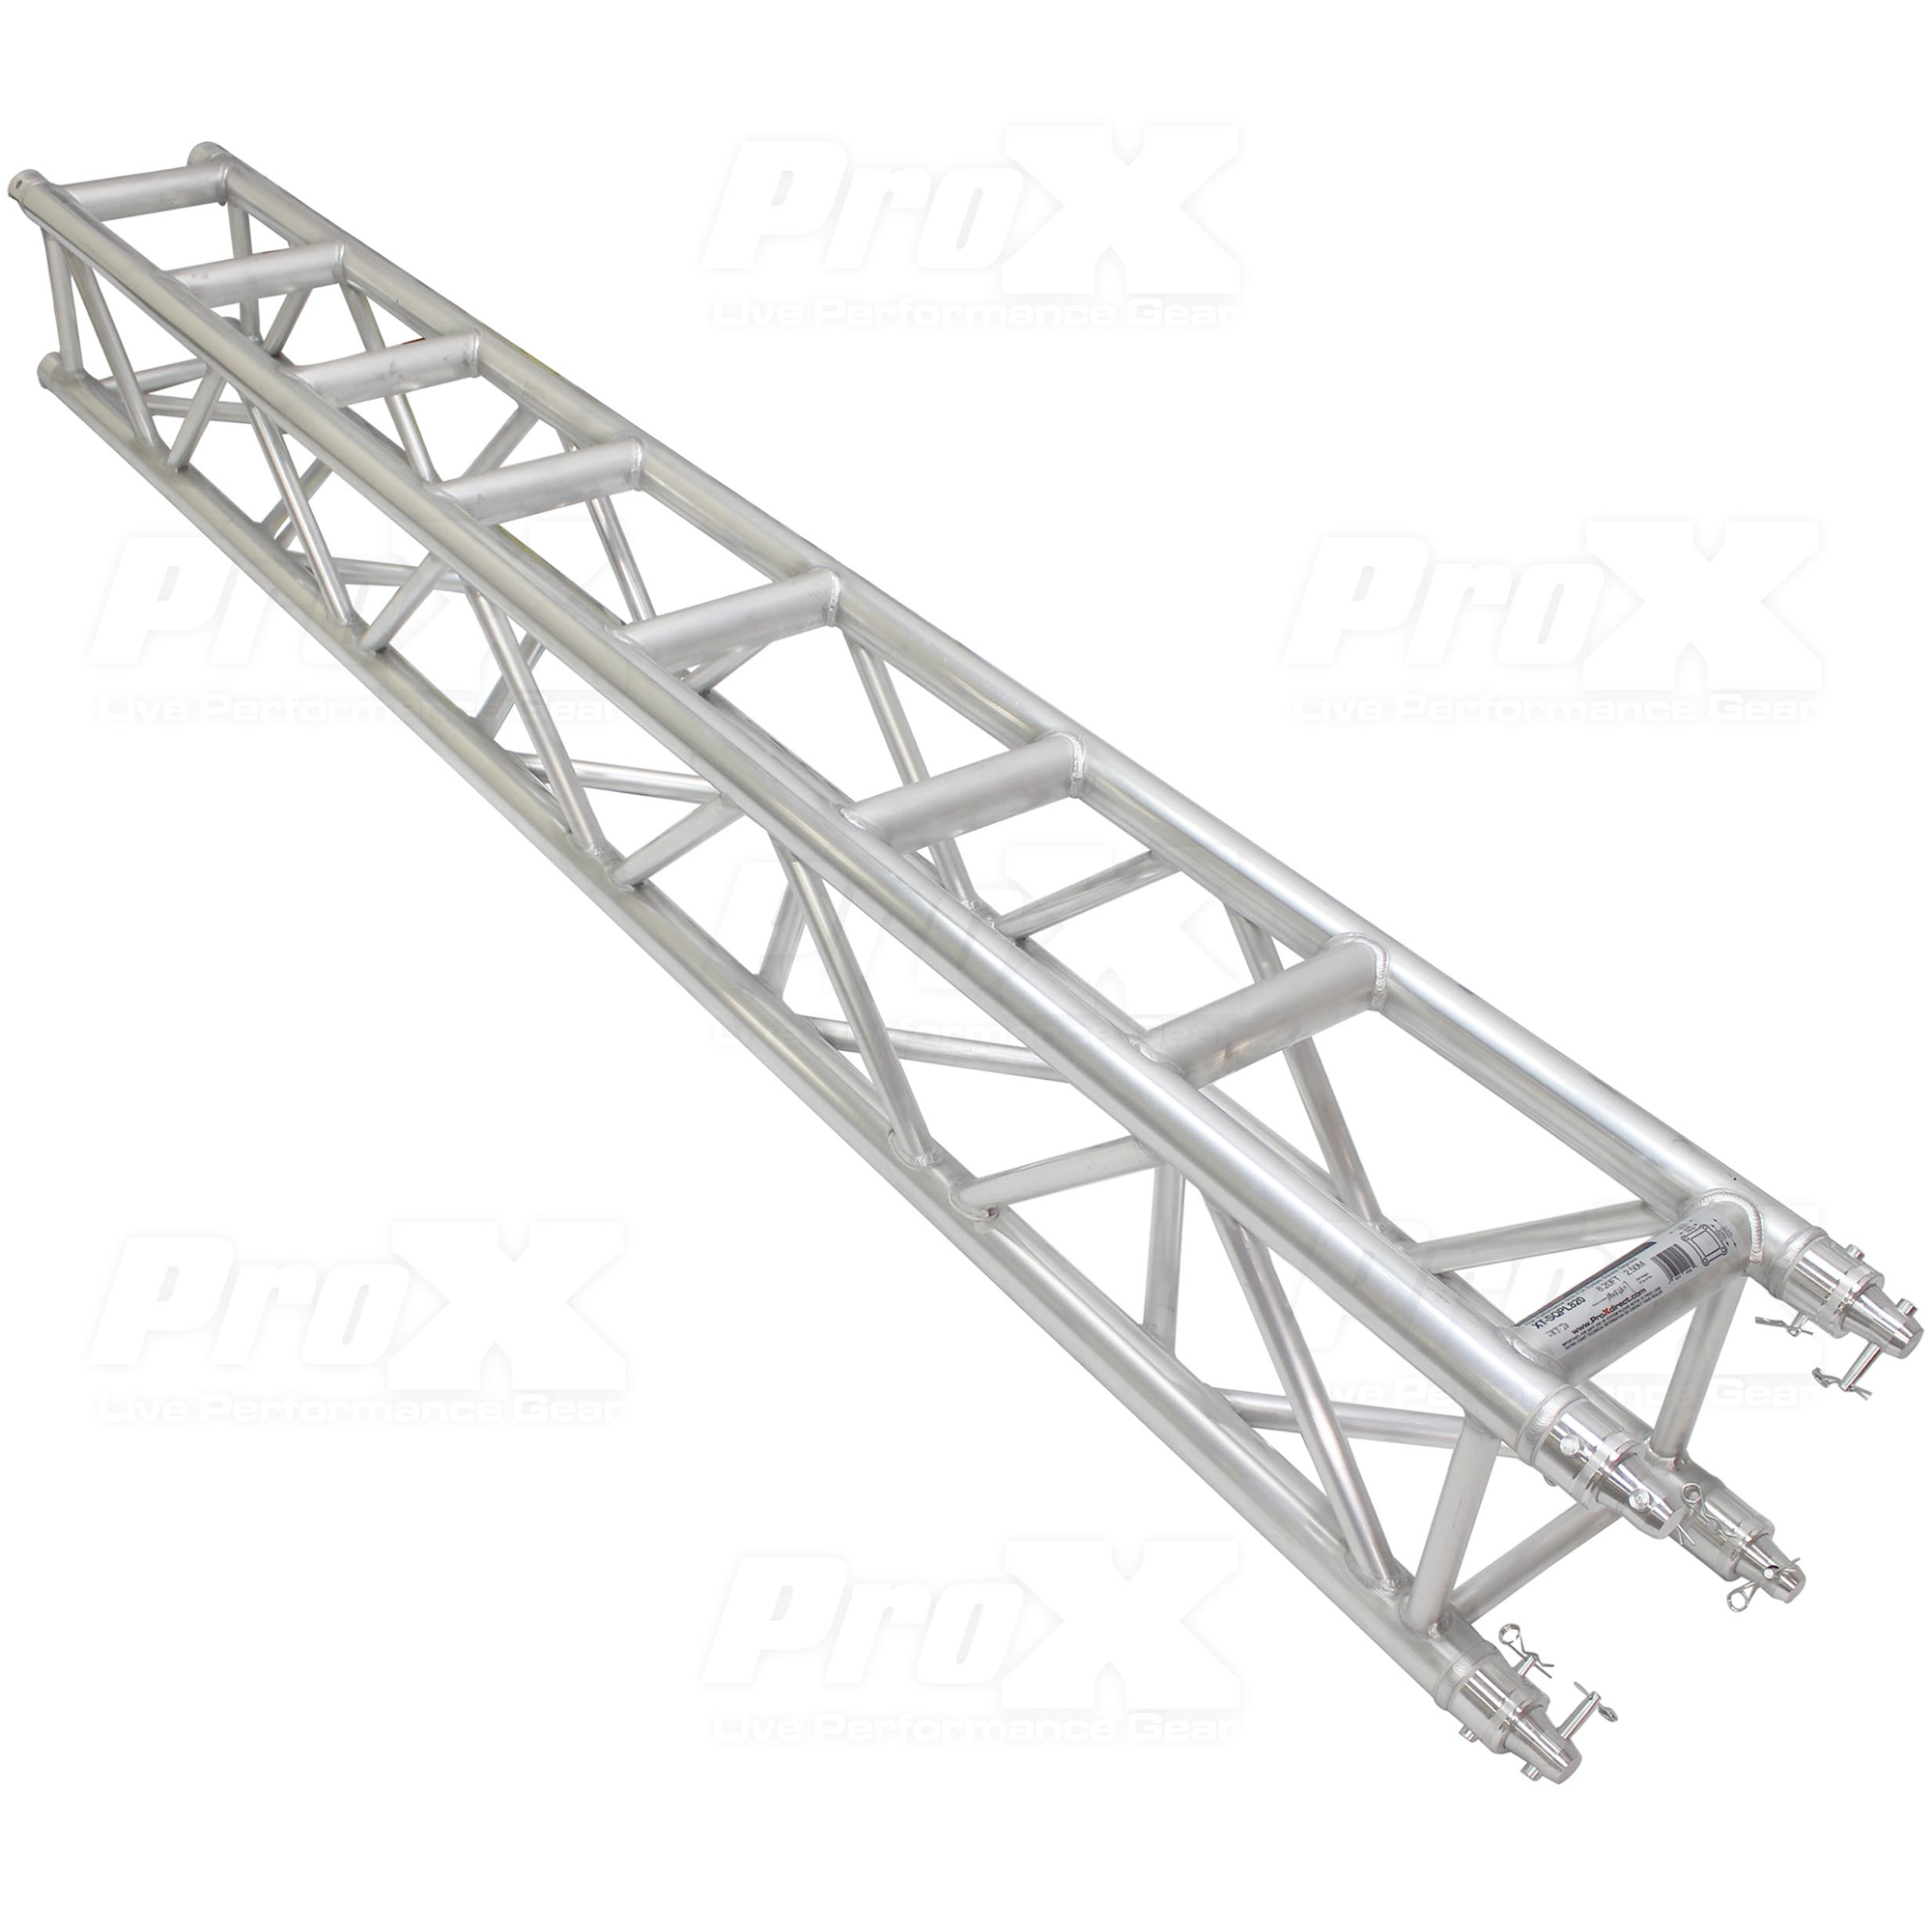 Prox Xt Sqpl820 8 20 Ft 2 50m F34 Truss Ladder Segment